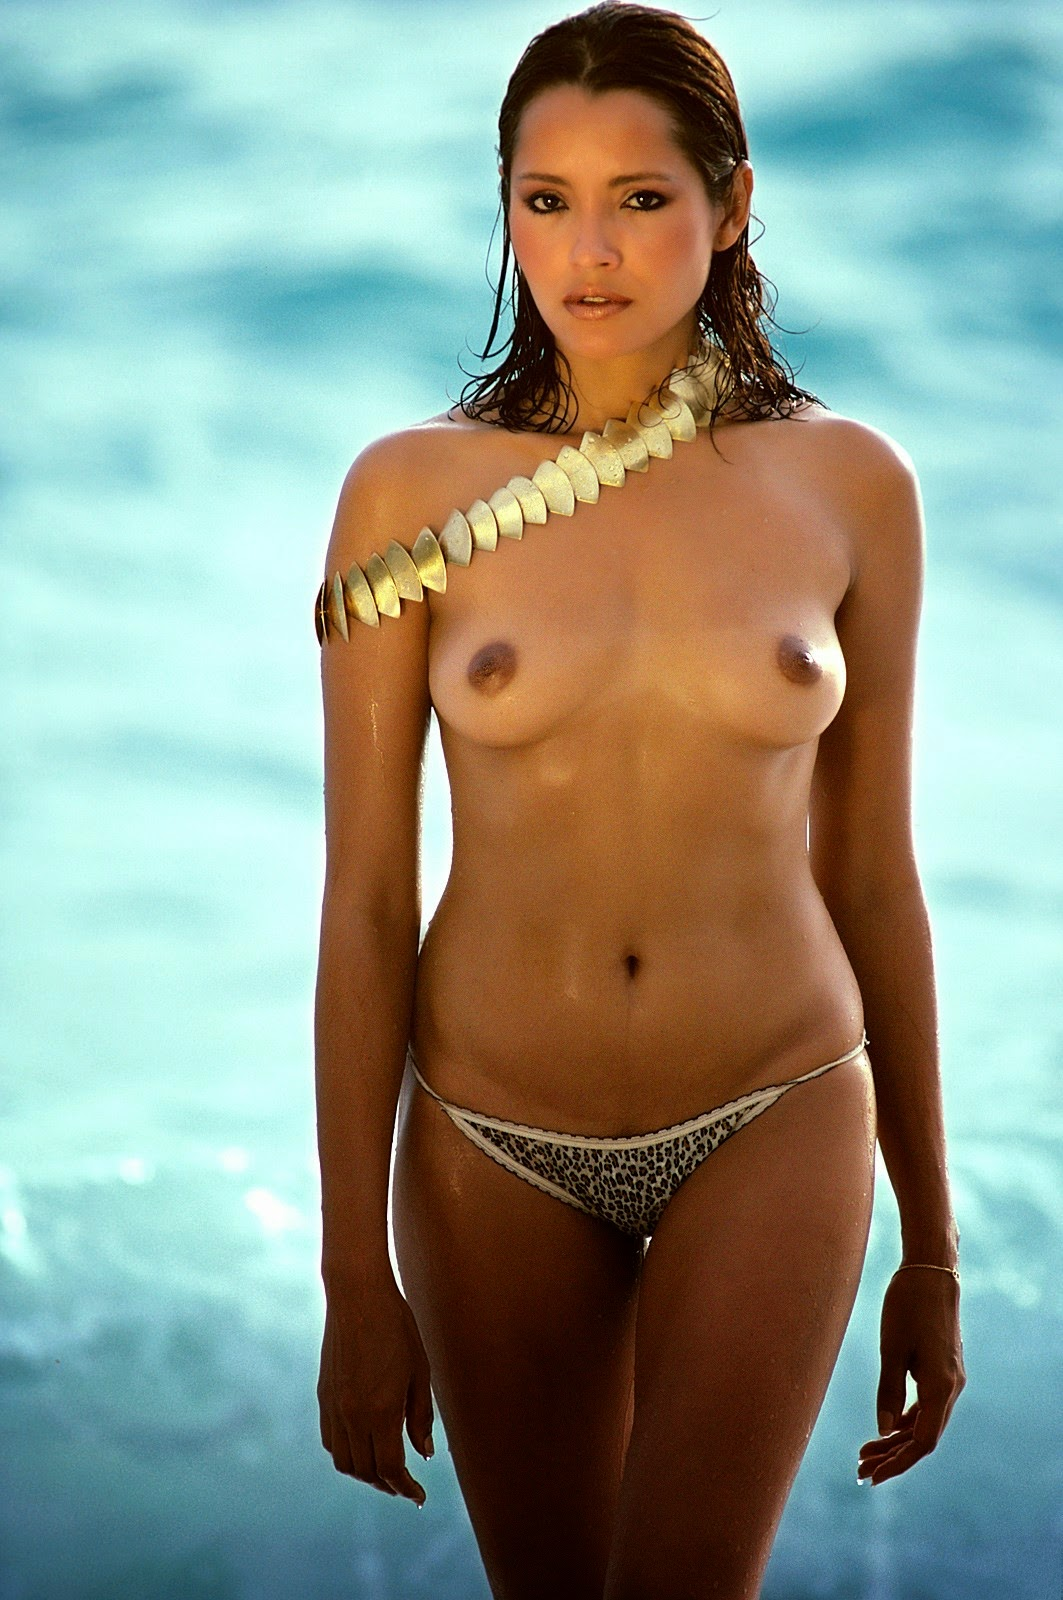 Lifestyles of the Nude and Famous: Barbara Carrera